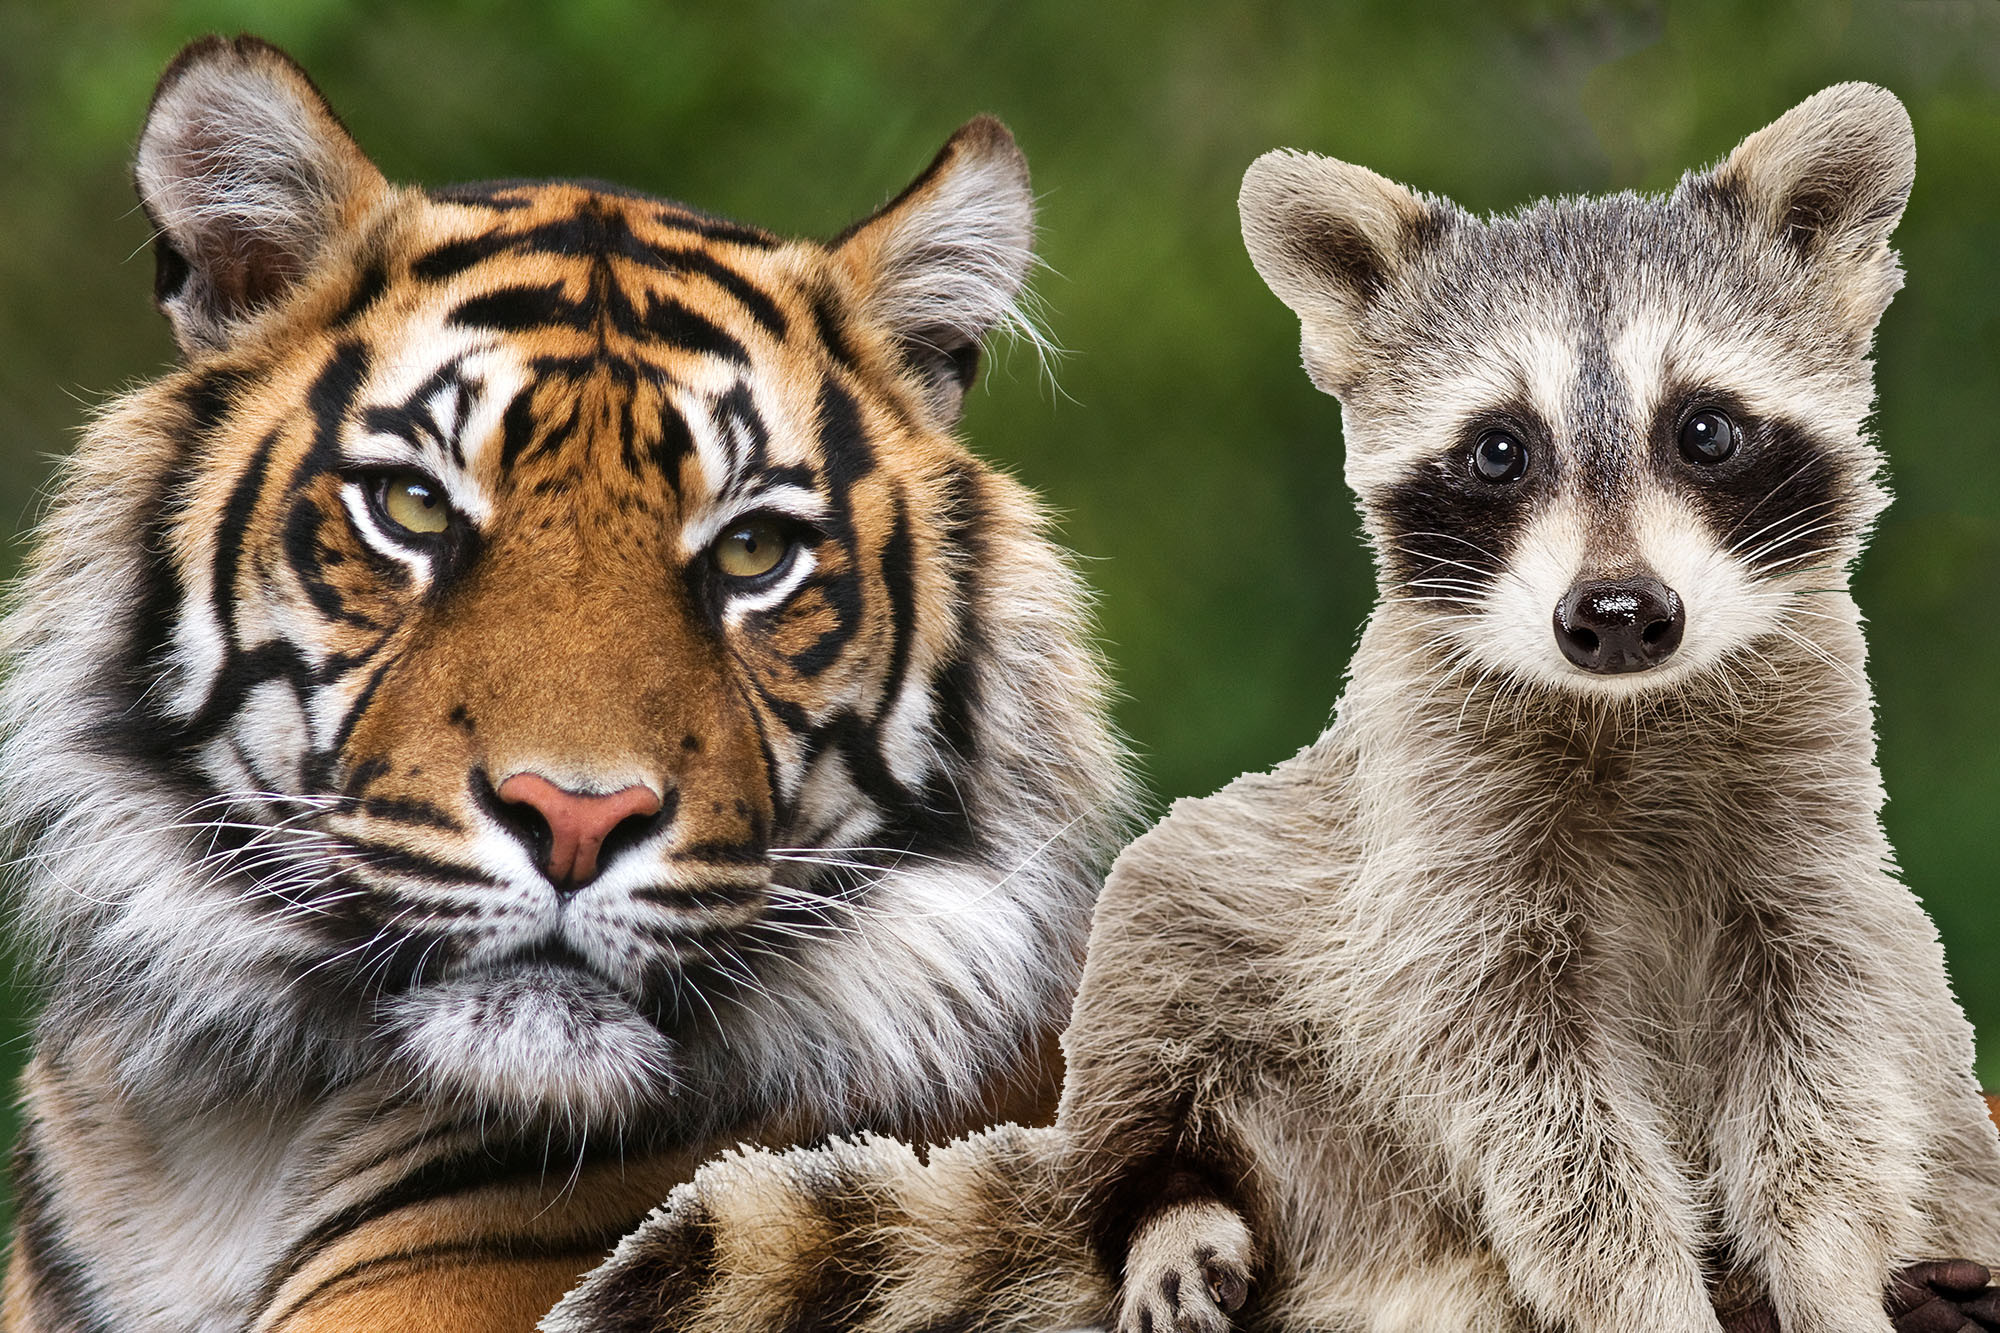 Some New Yorkers can't tell the difference between a tiger and a raccoon